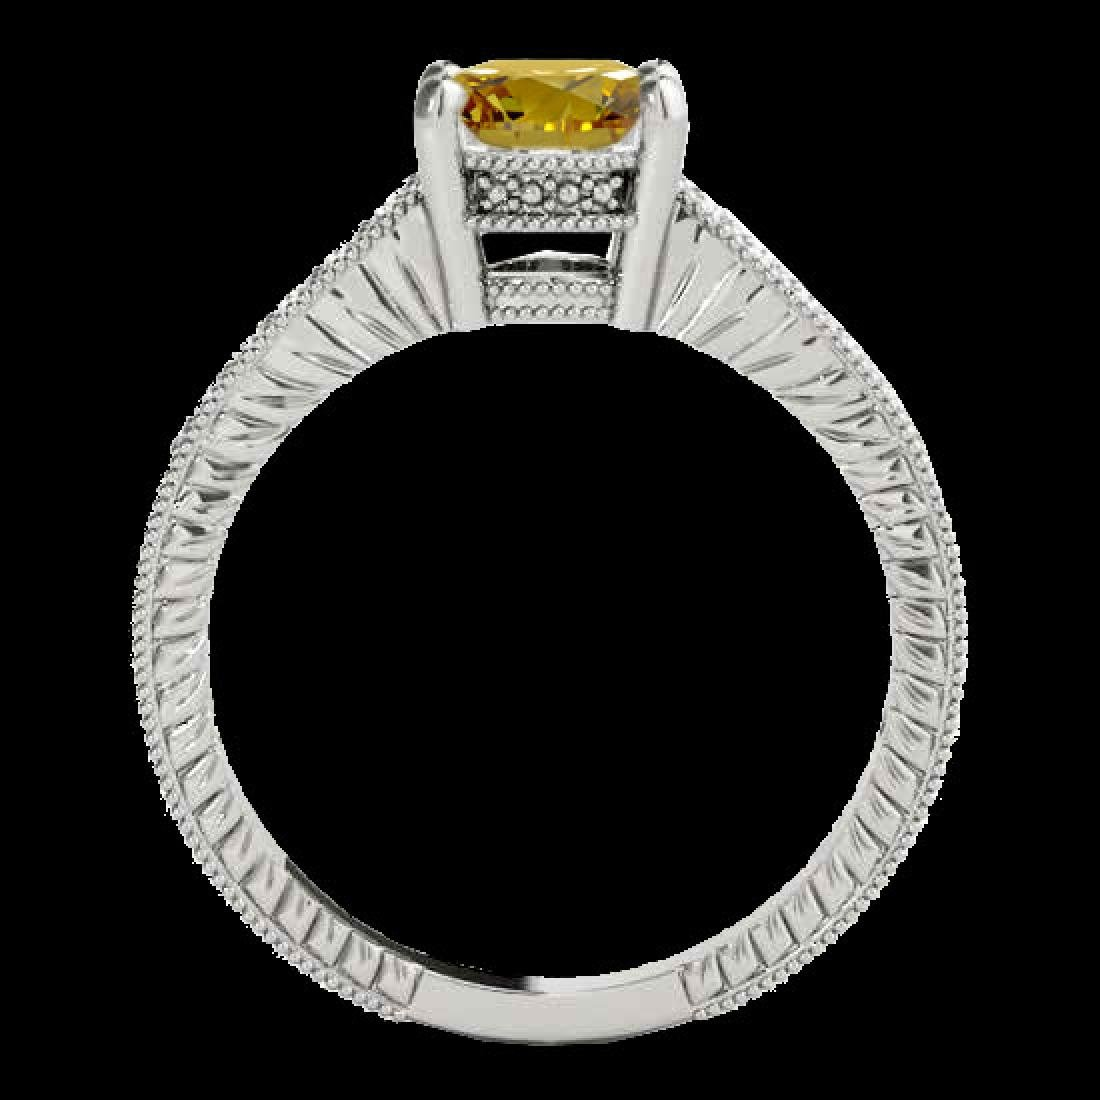 1.2 CTW Certified Si Intense Yellow Diamond Solitaire - 2